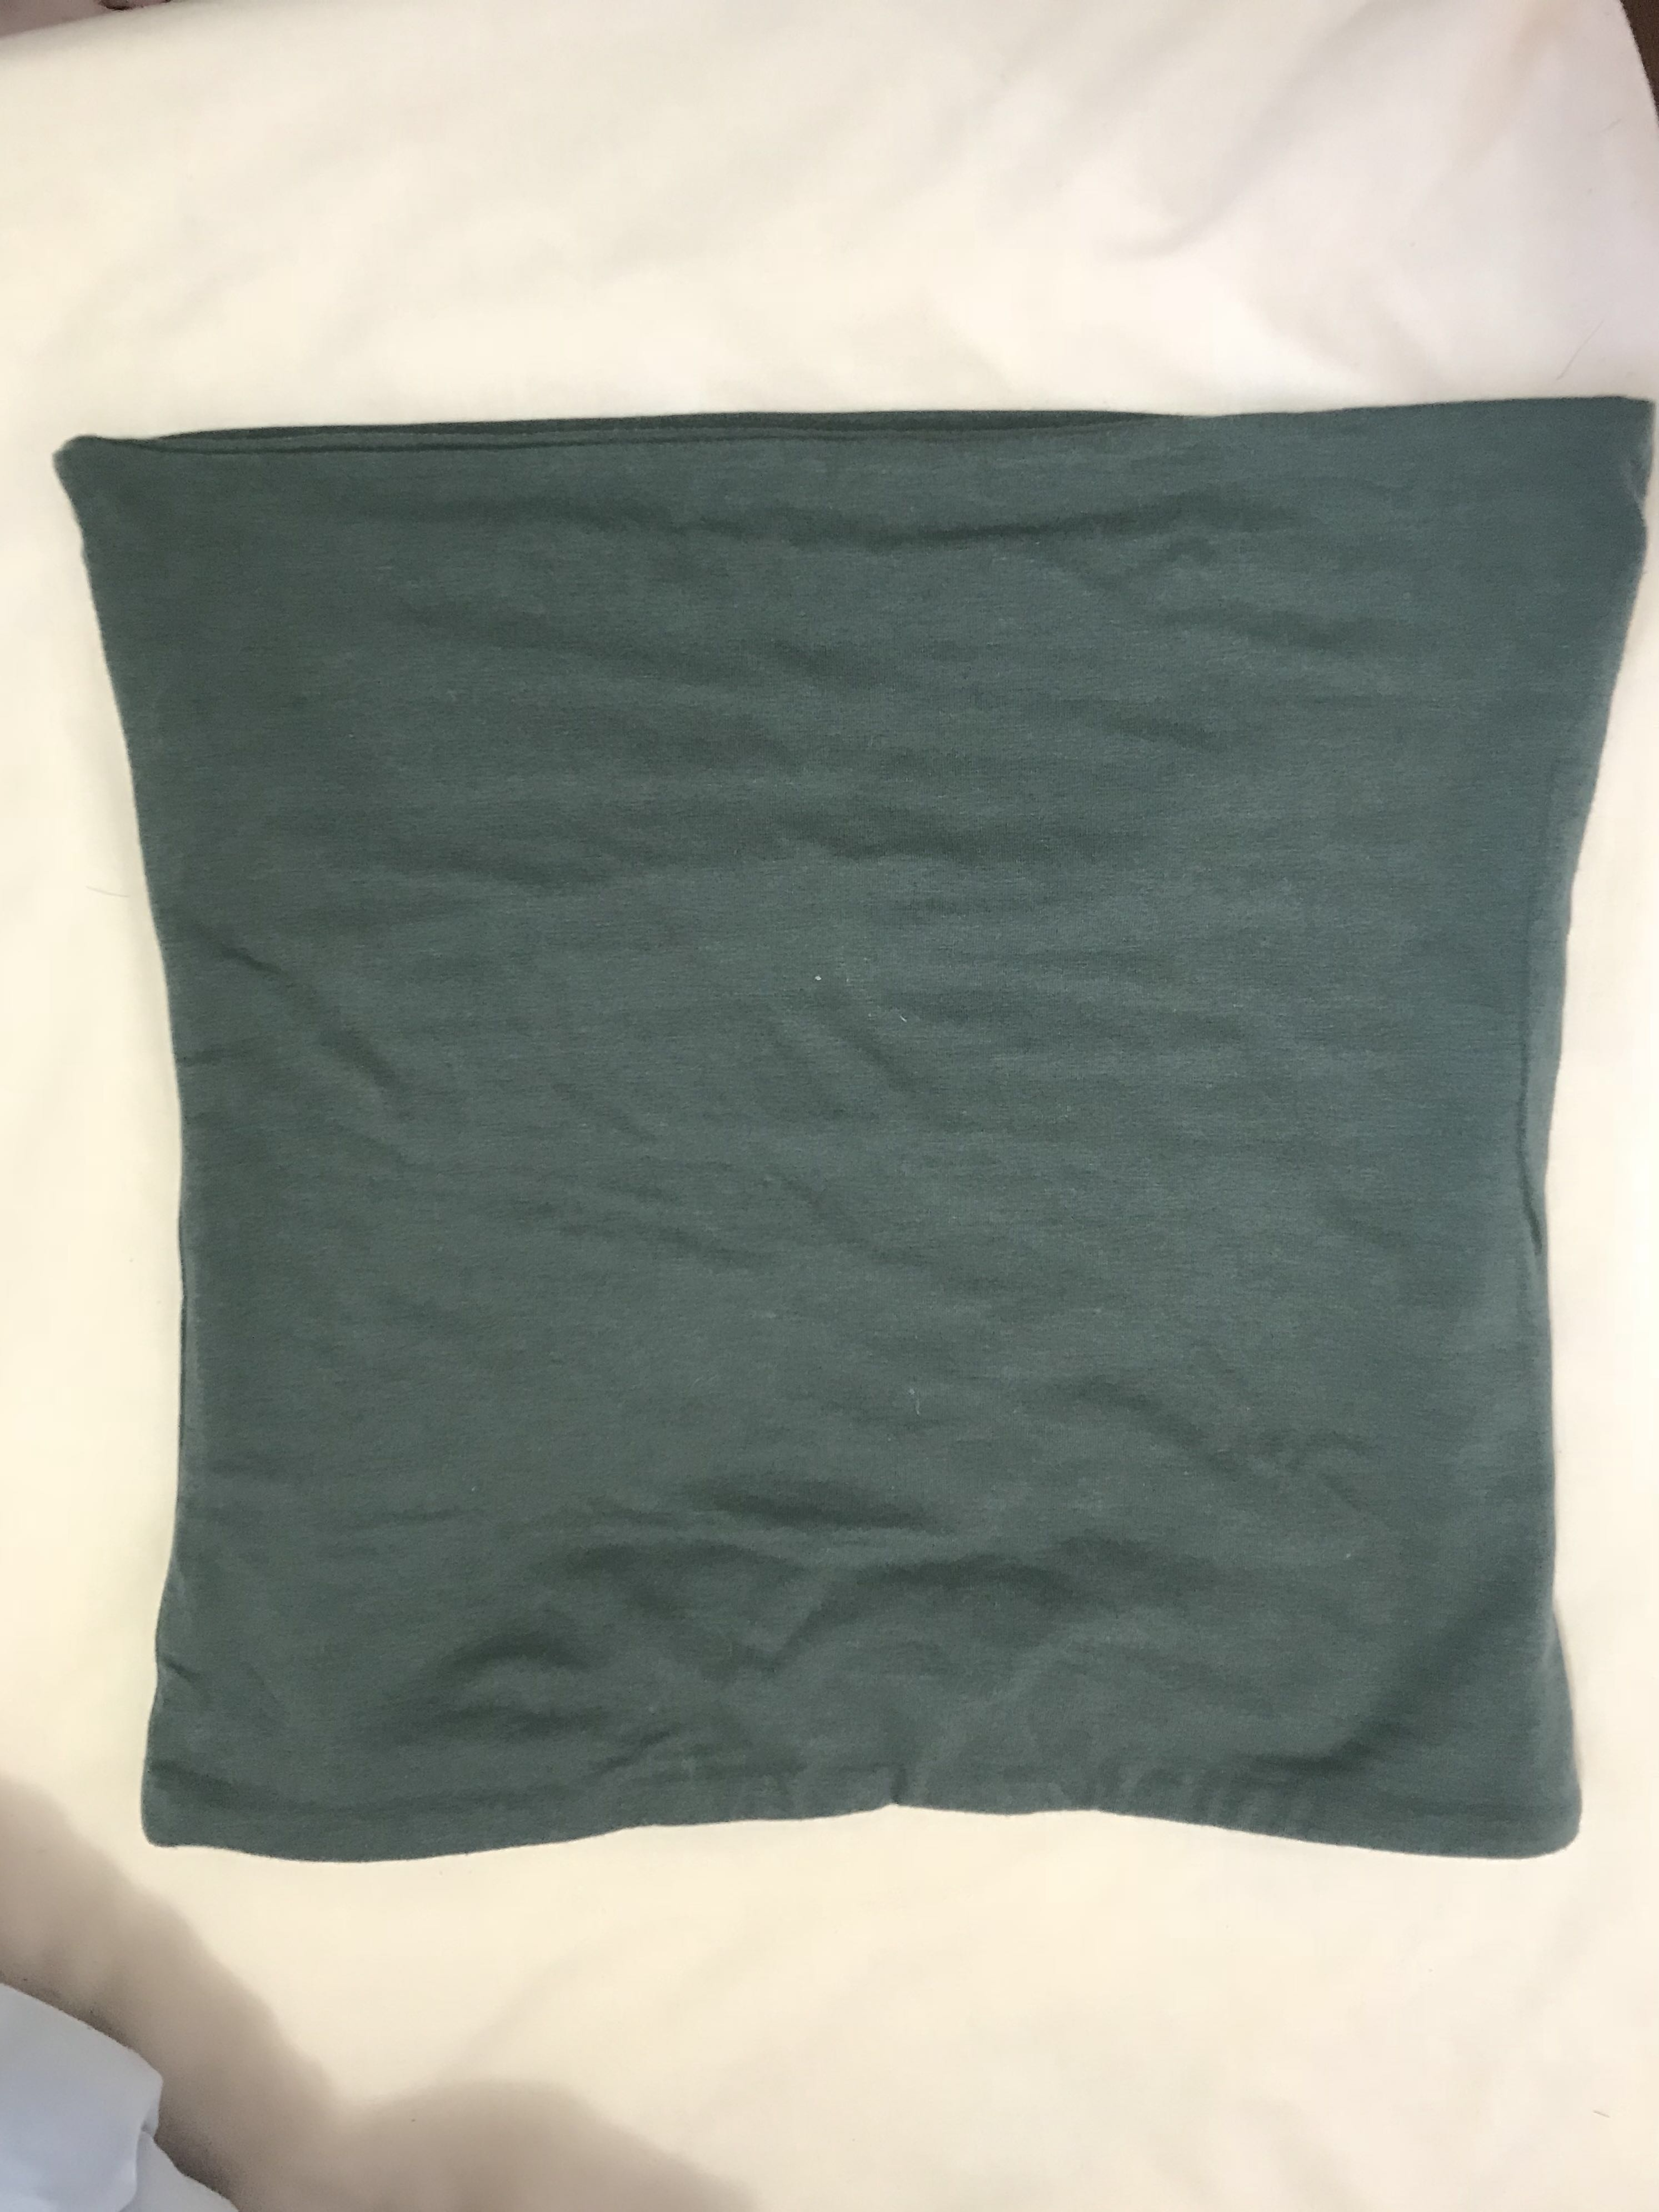 Green tube top (also available in black)